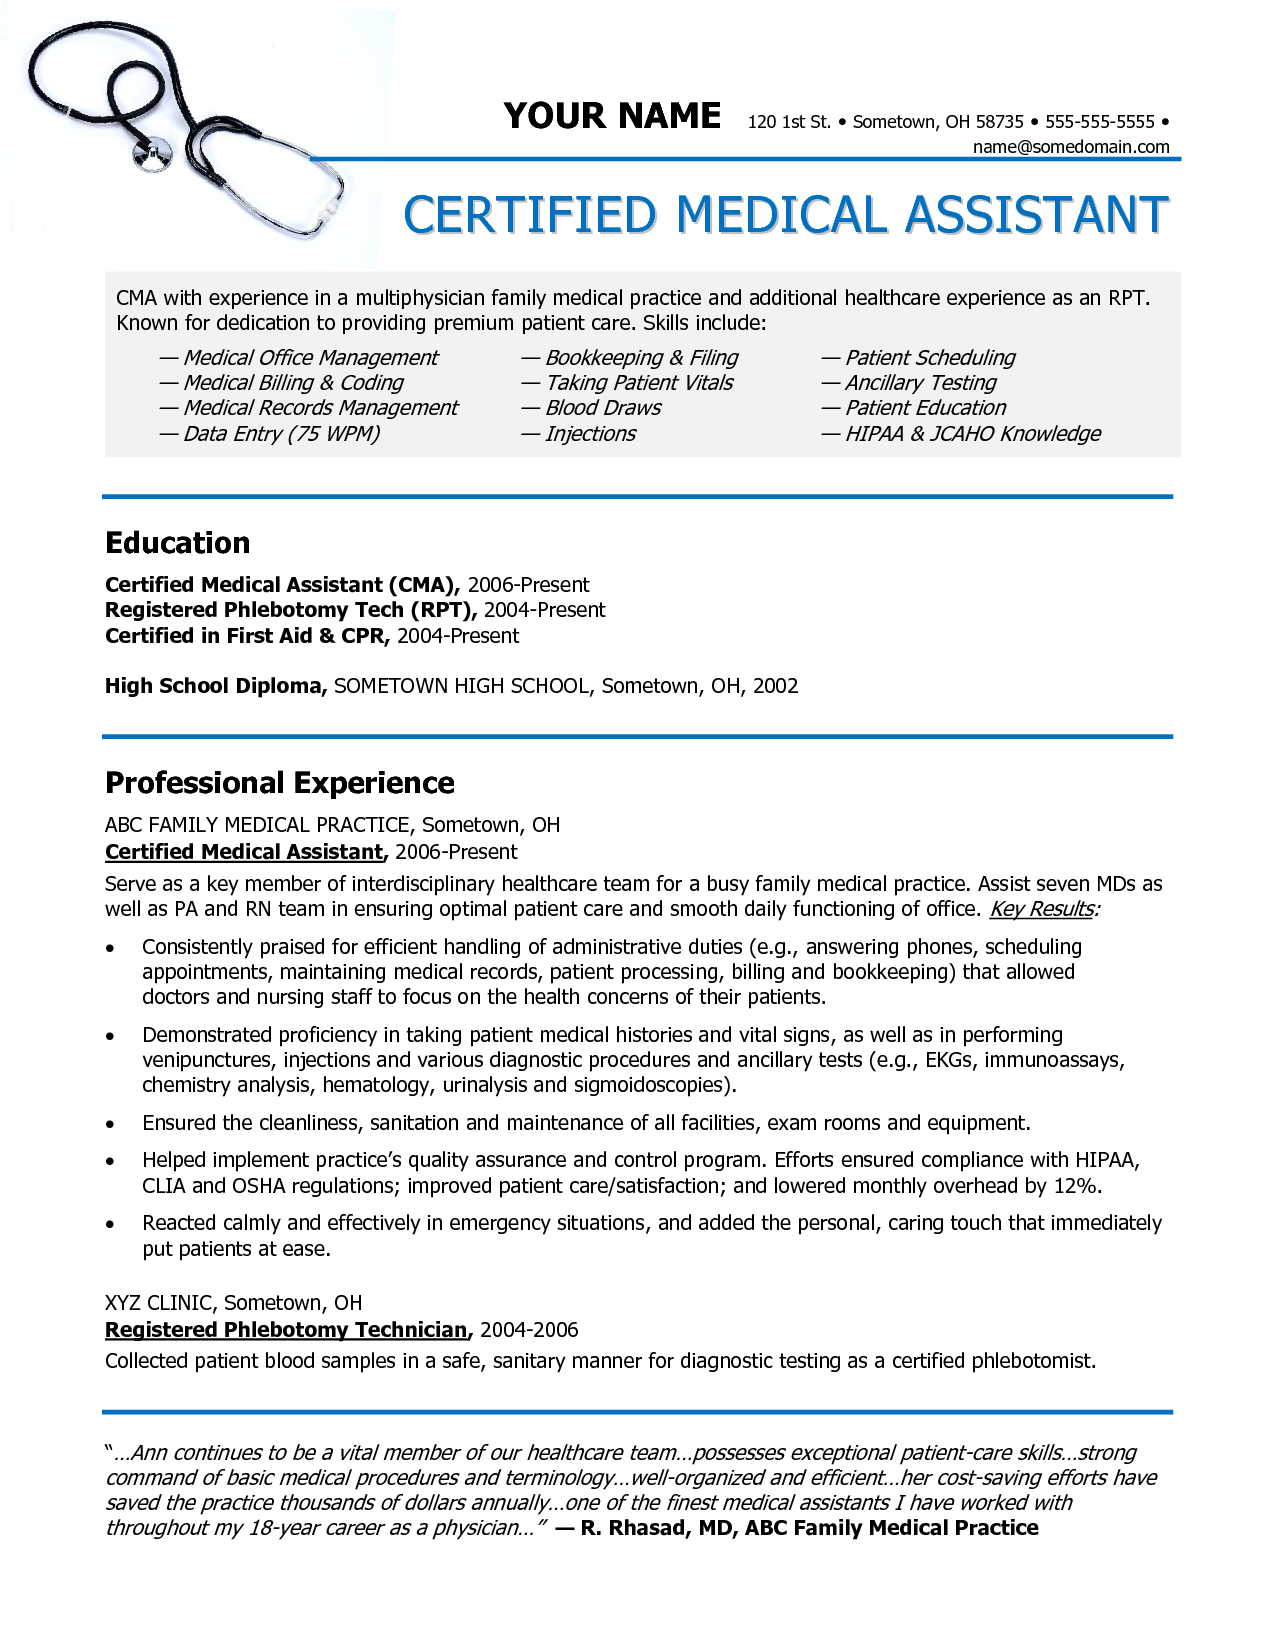 phlebotomist duties resume